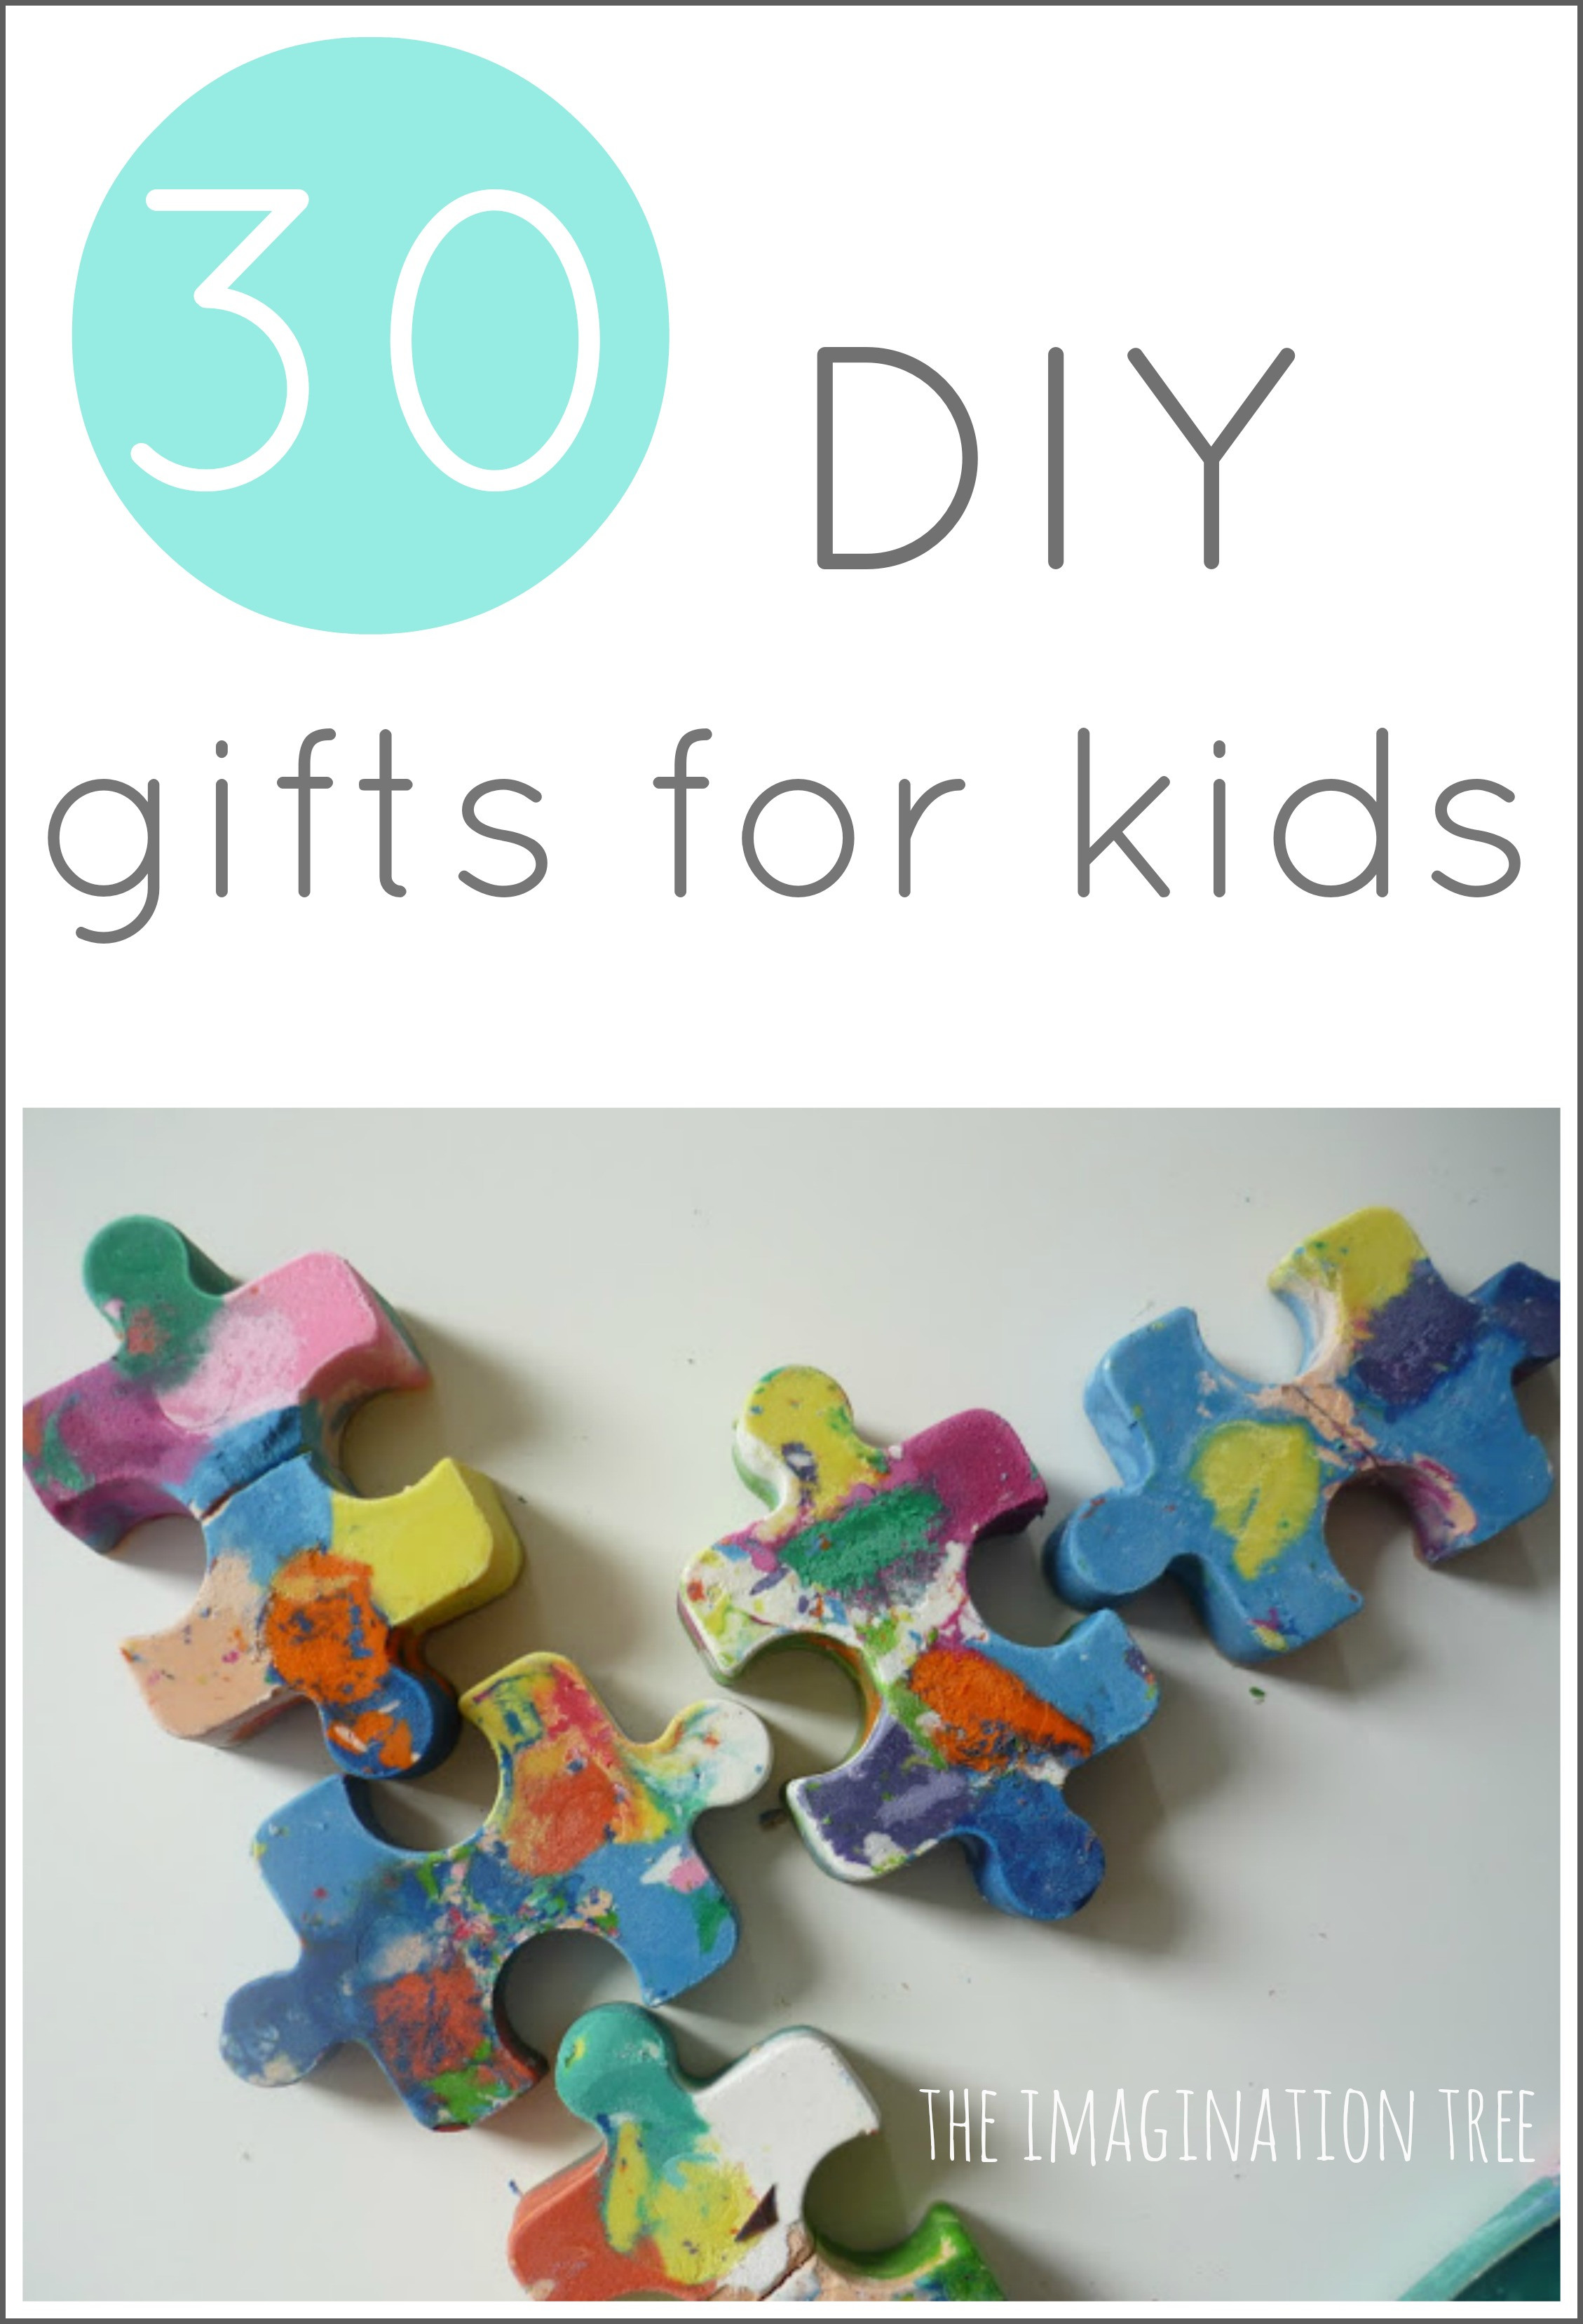 Best ideas about DIY Kid Christmas Gifts . Save or Pin 30 DIY Gifts to Make for Kids The Imagination Tree Now.